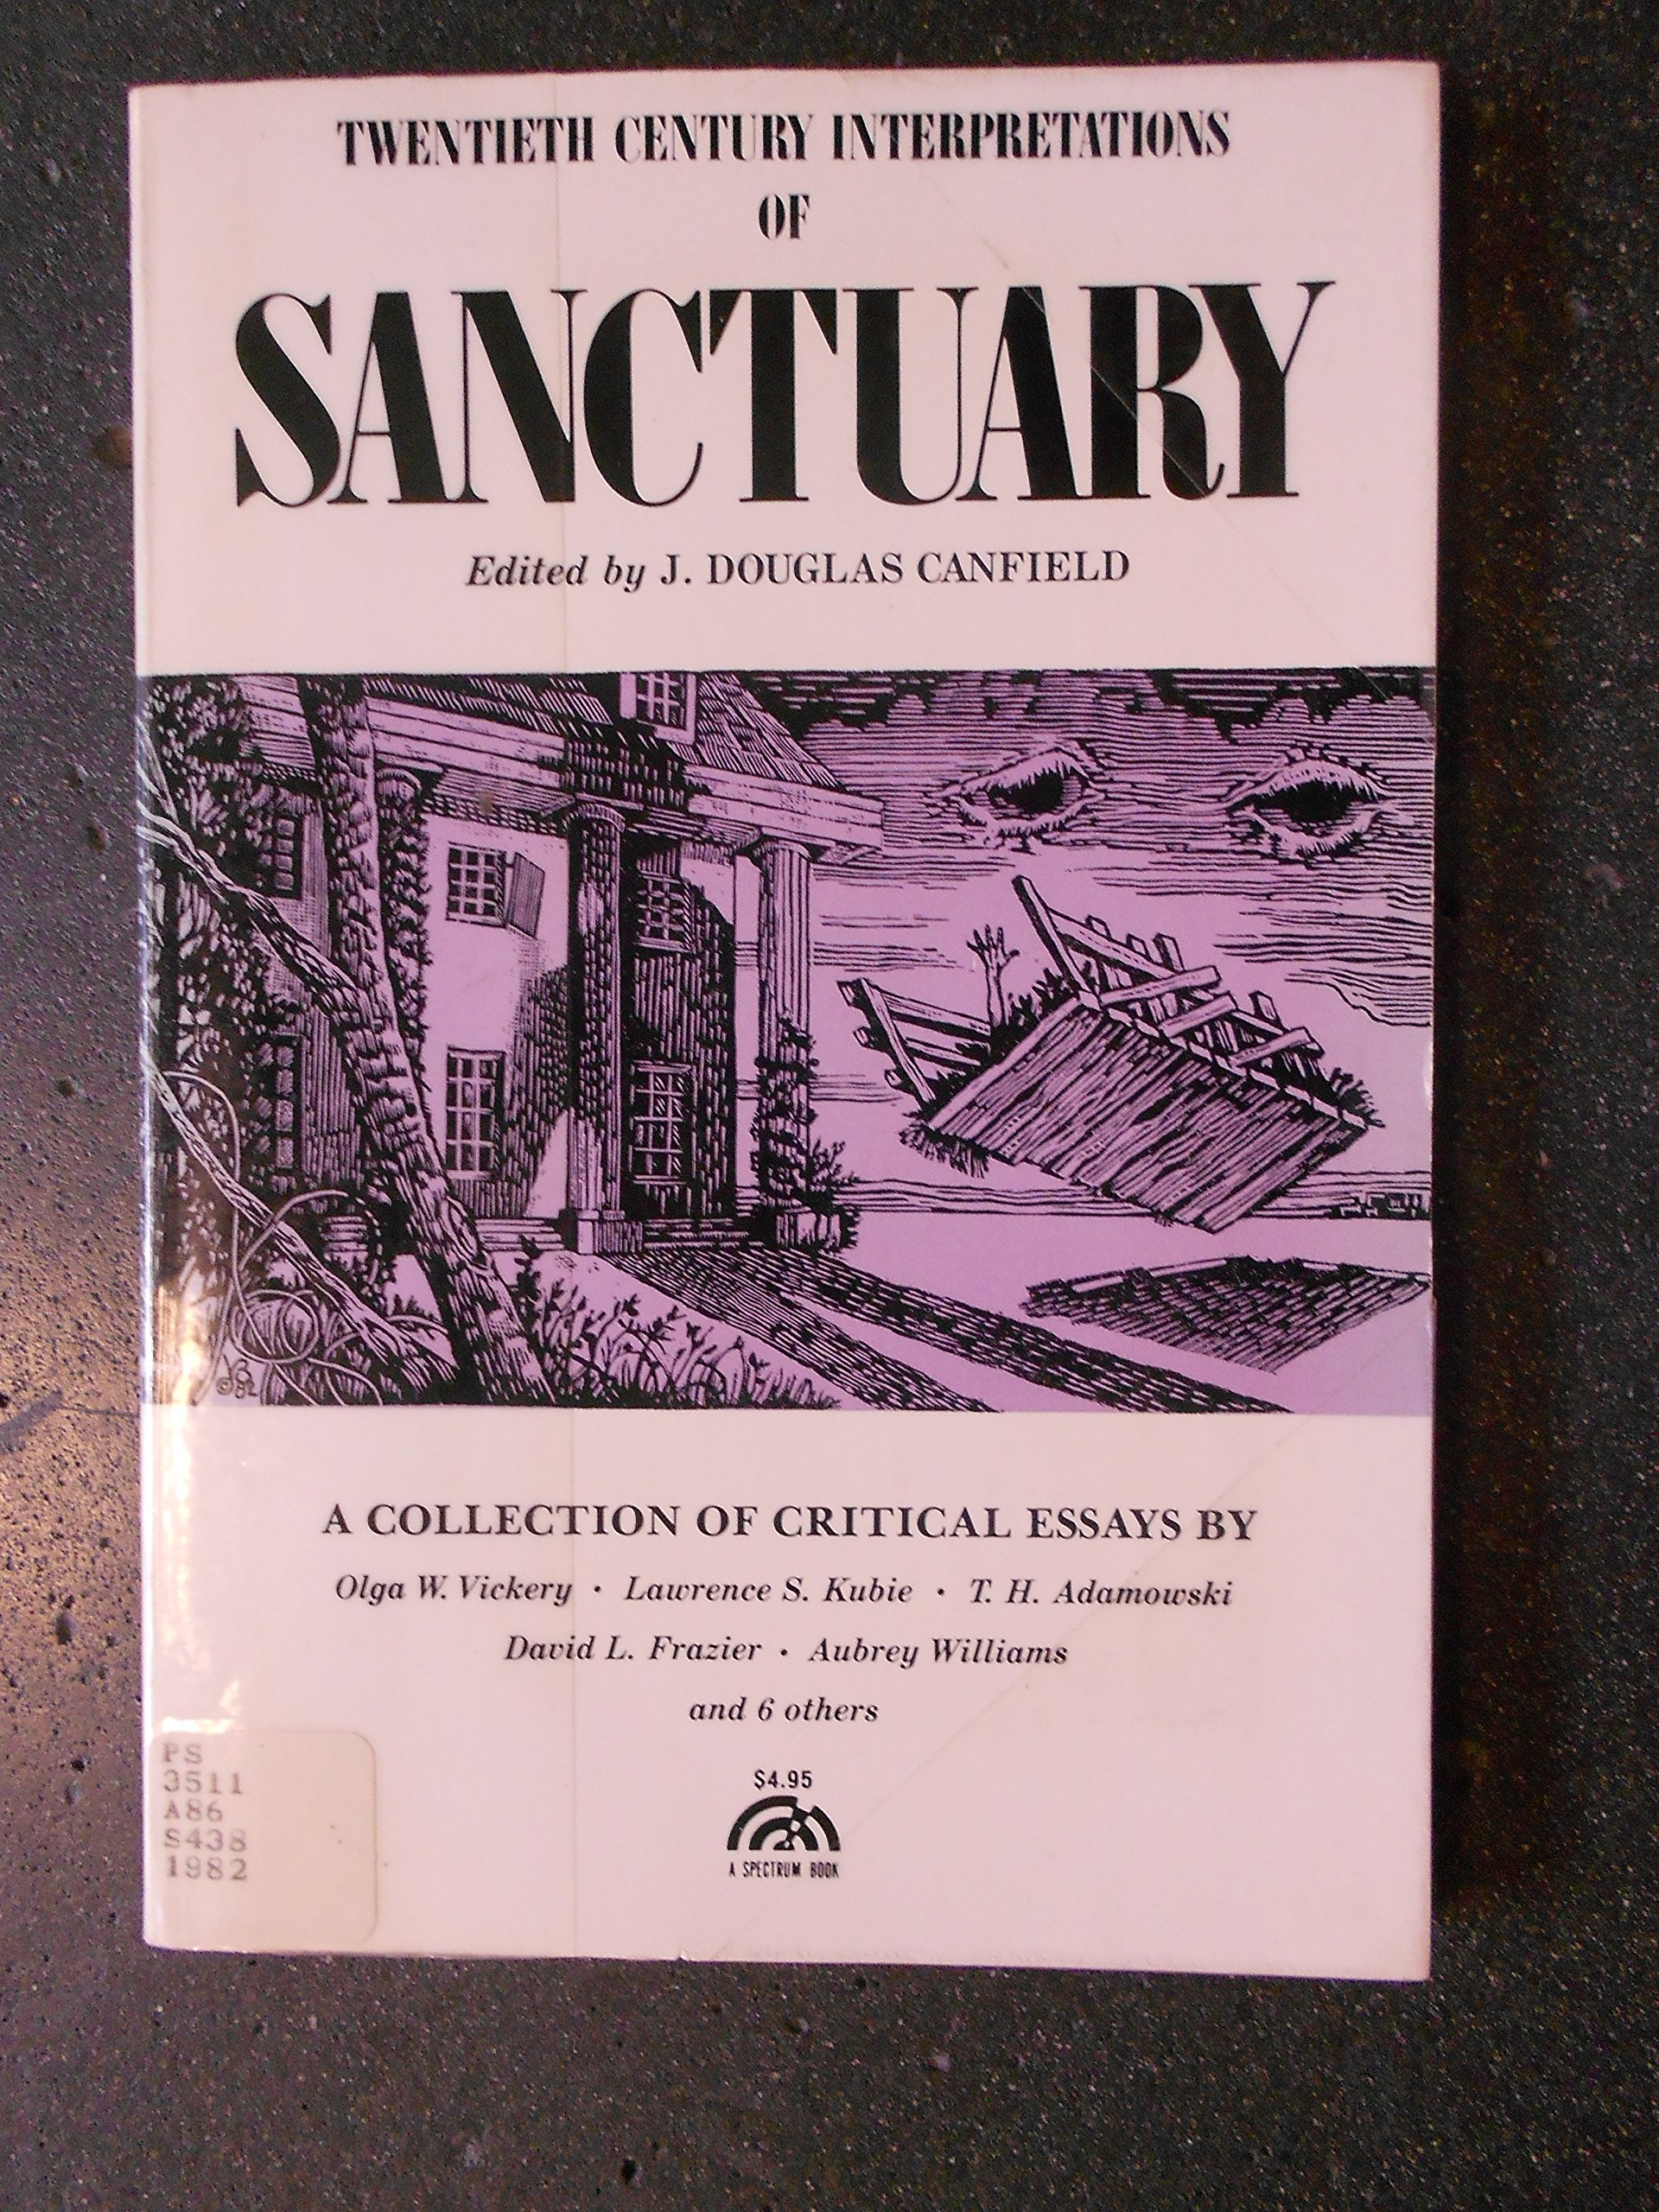 William Faulkner's Sanctuary: A Collection of Critical Essays (20th Century  Interpretations): Amazon.co.uk: Douglas J. Canfield: 9780137912100: Books